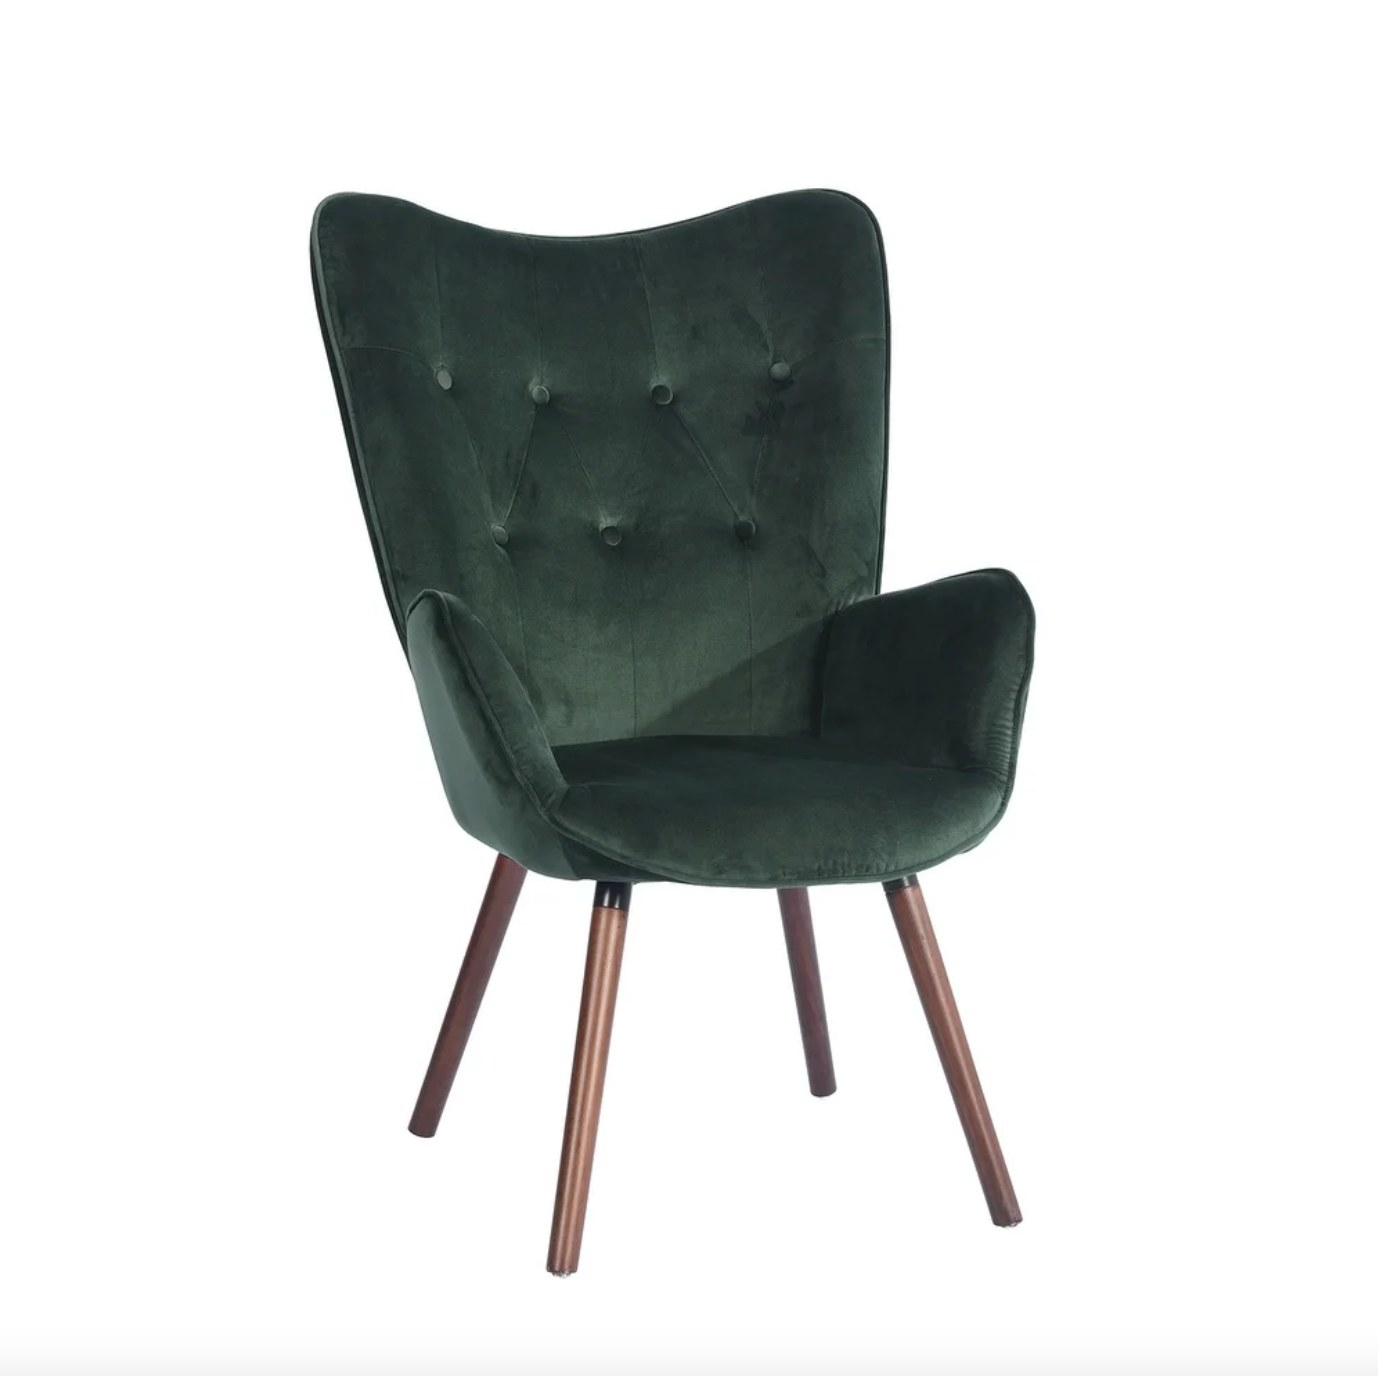 The velvet tufted accent chair in green